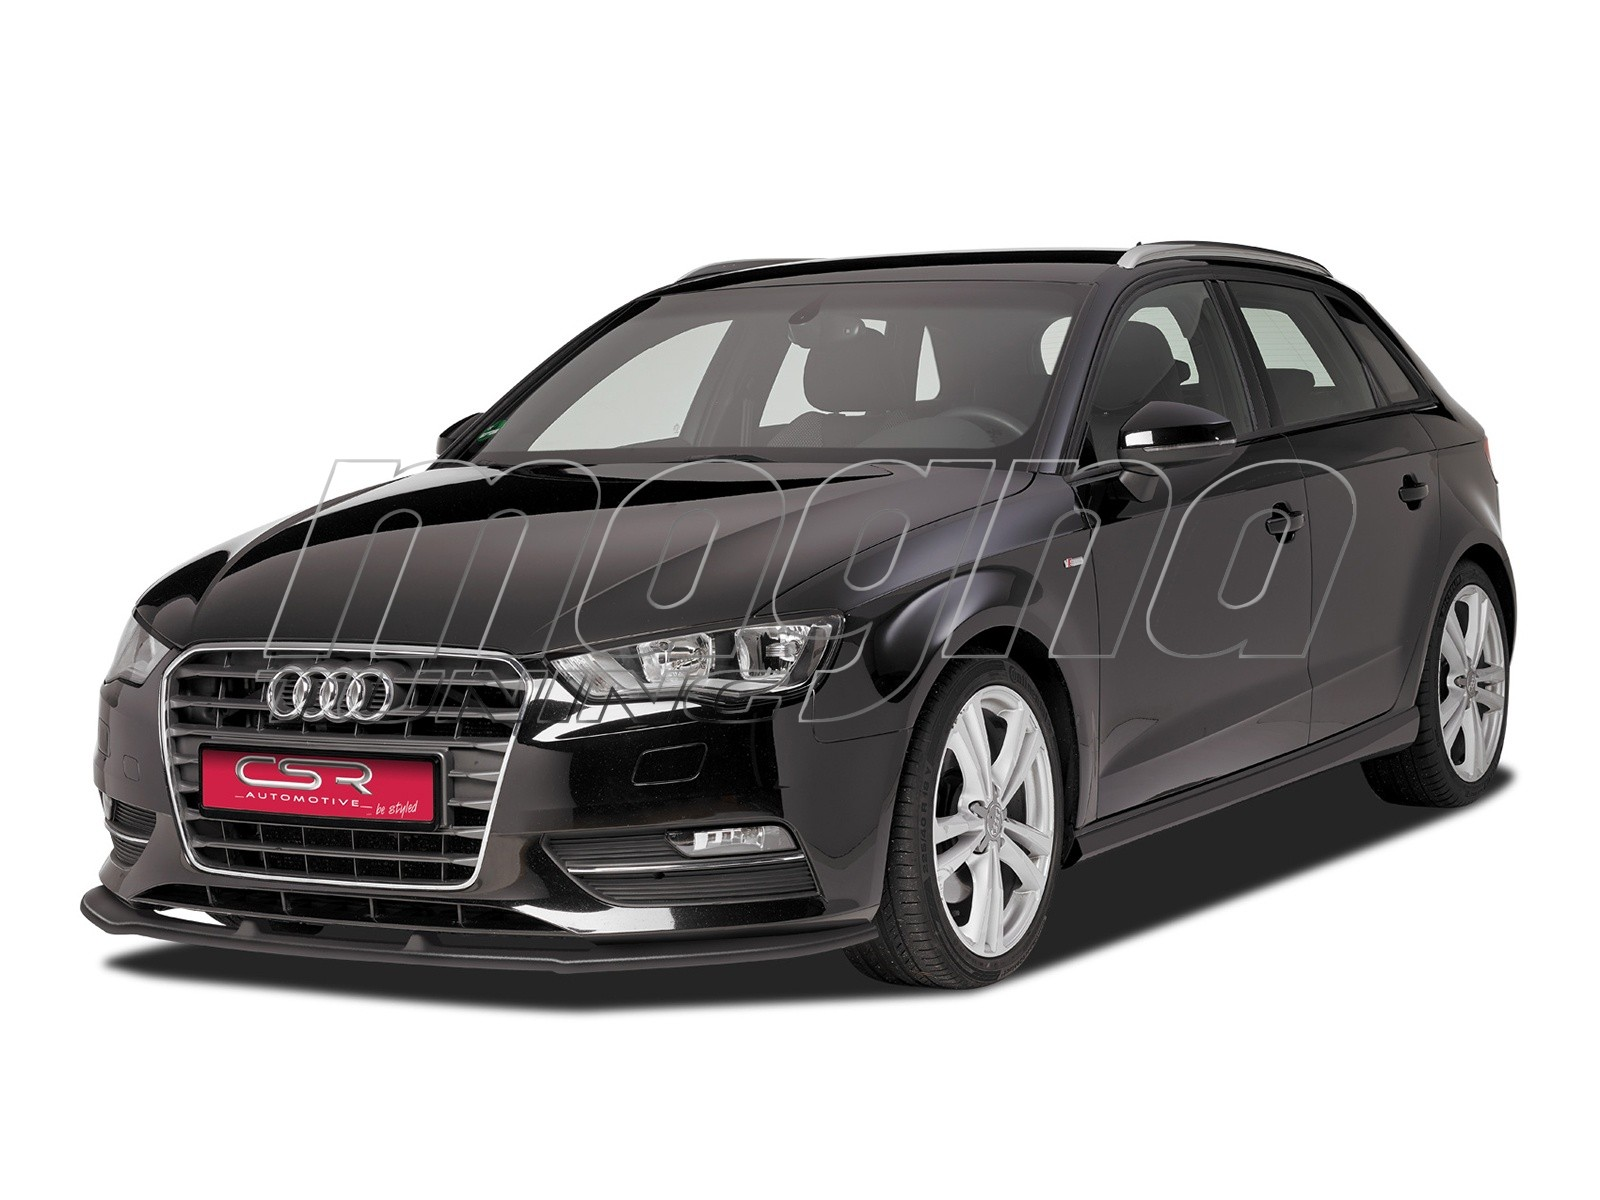 audi a3 8v newline body kit. Black Bedroom Furniture Sets. Home Design Ideas